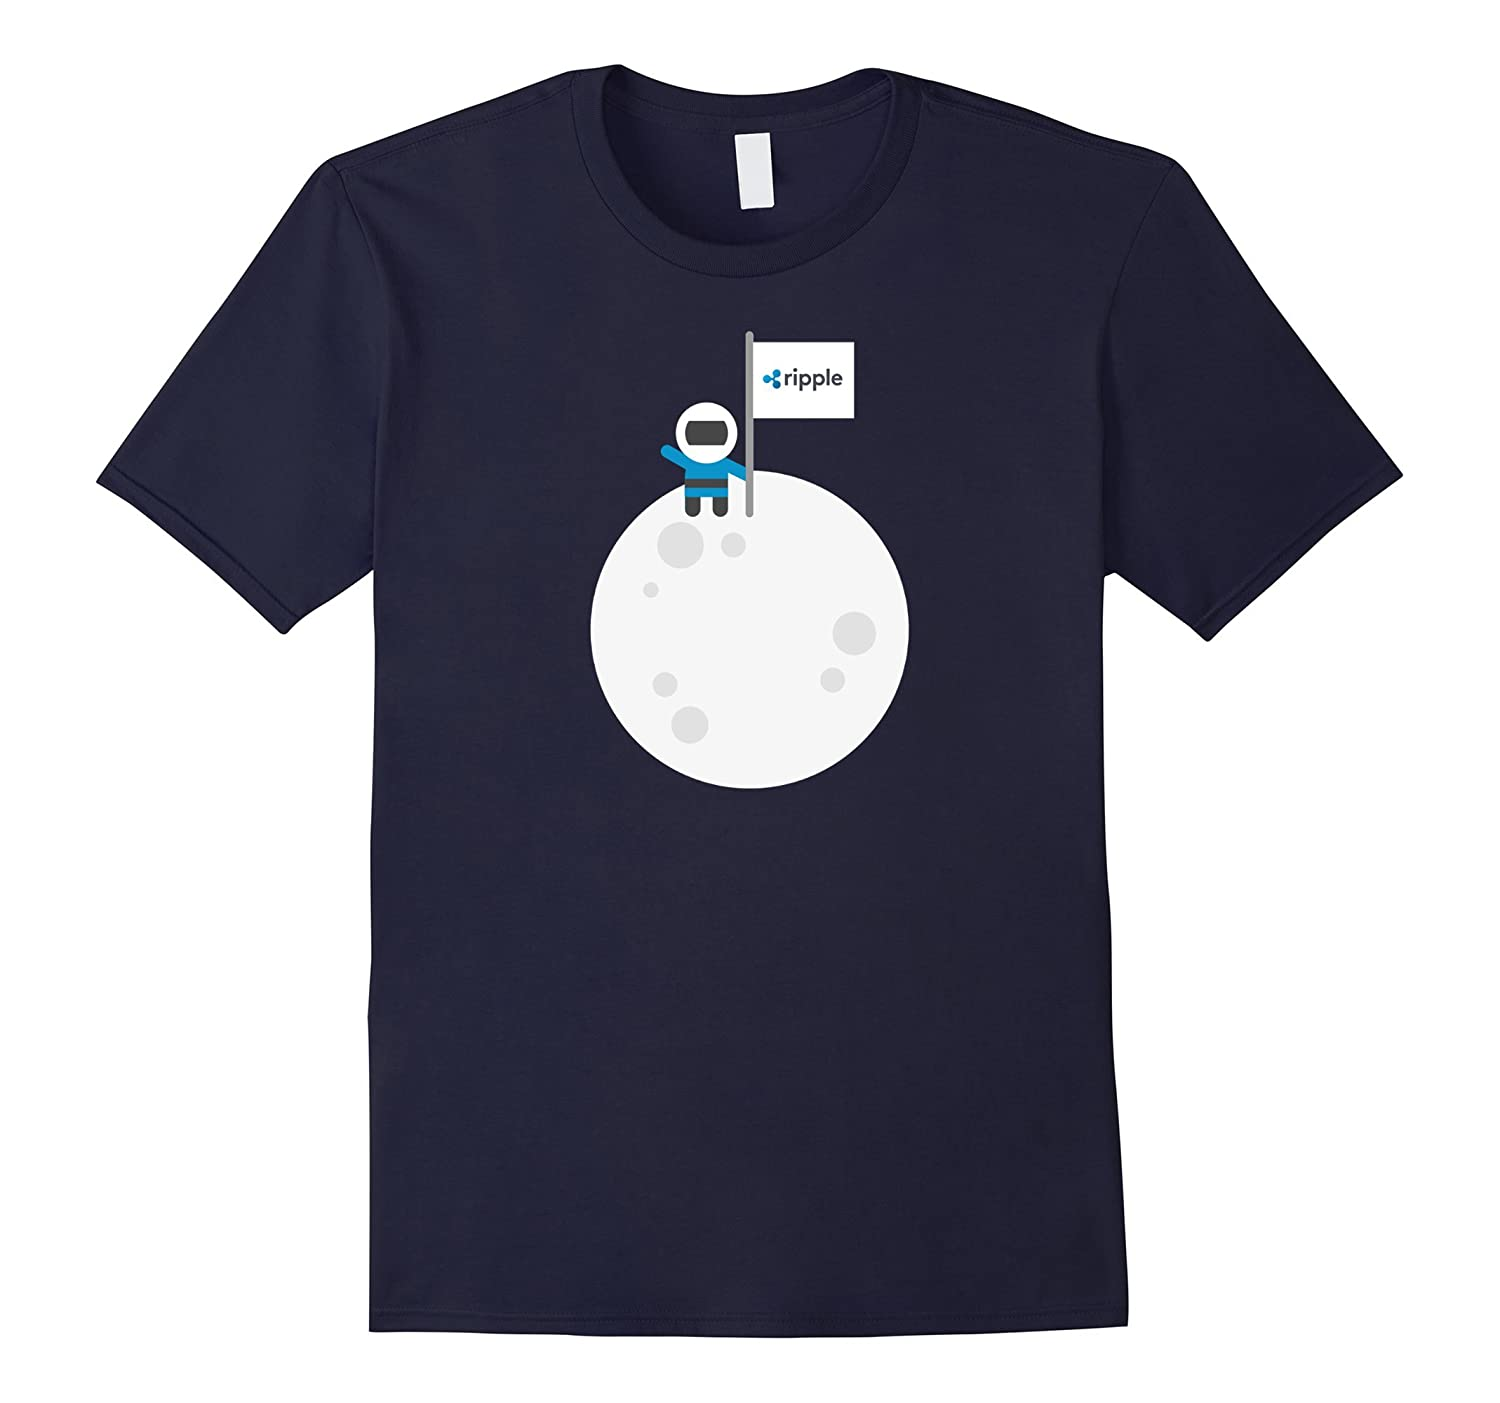 Ripple To The Moon!   Astronaut Graphic XRP Flag T-Shirt-RT